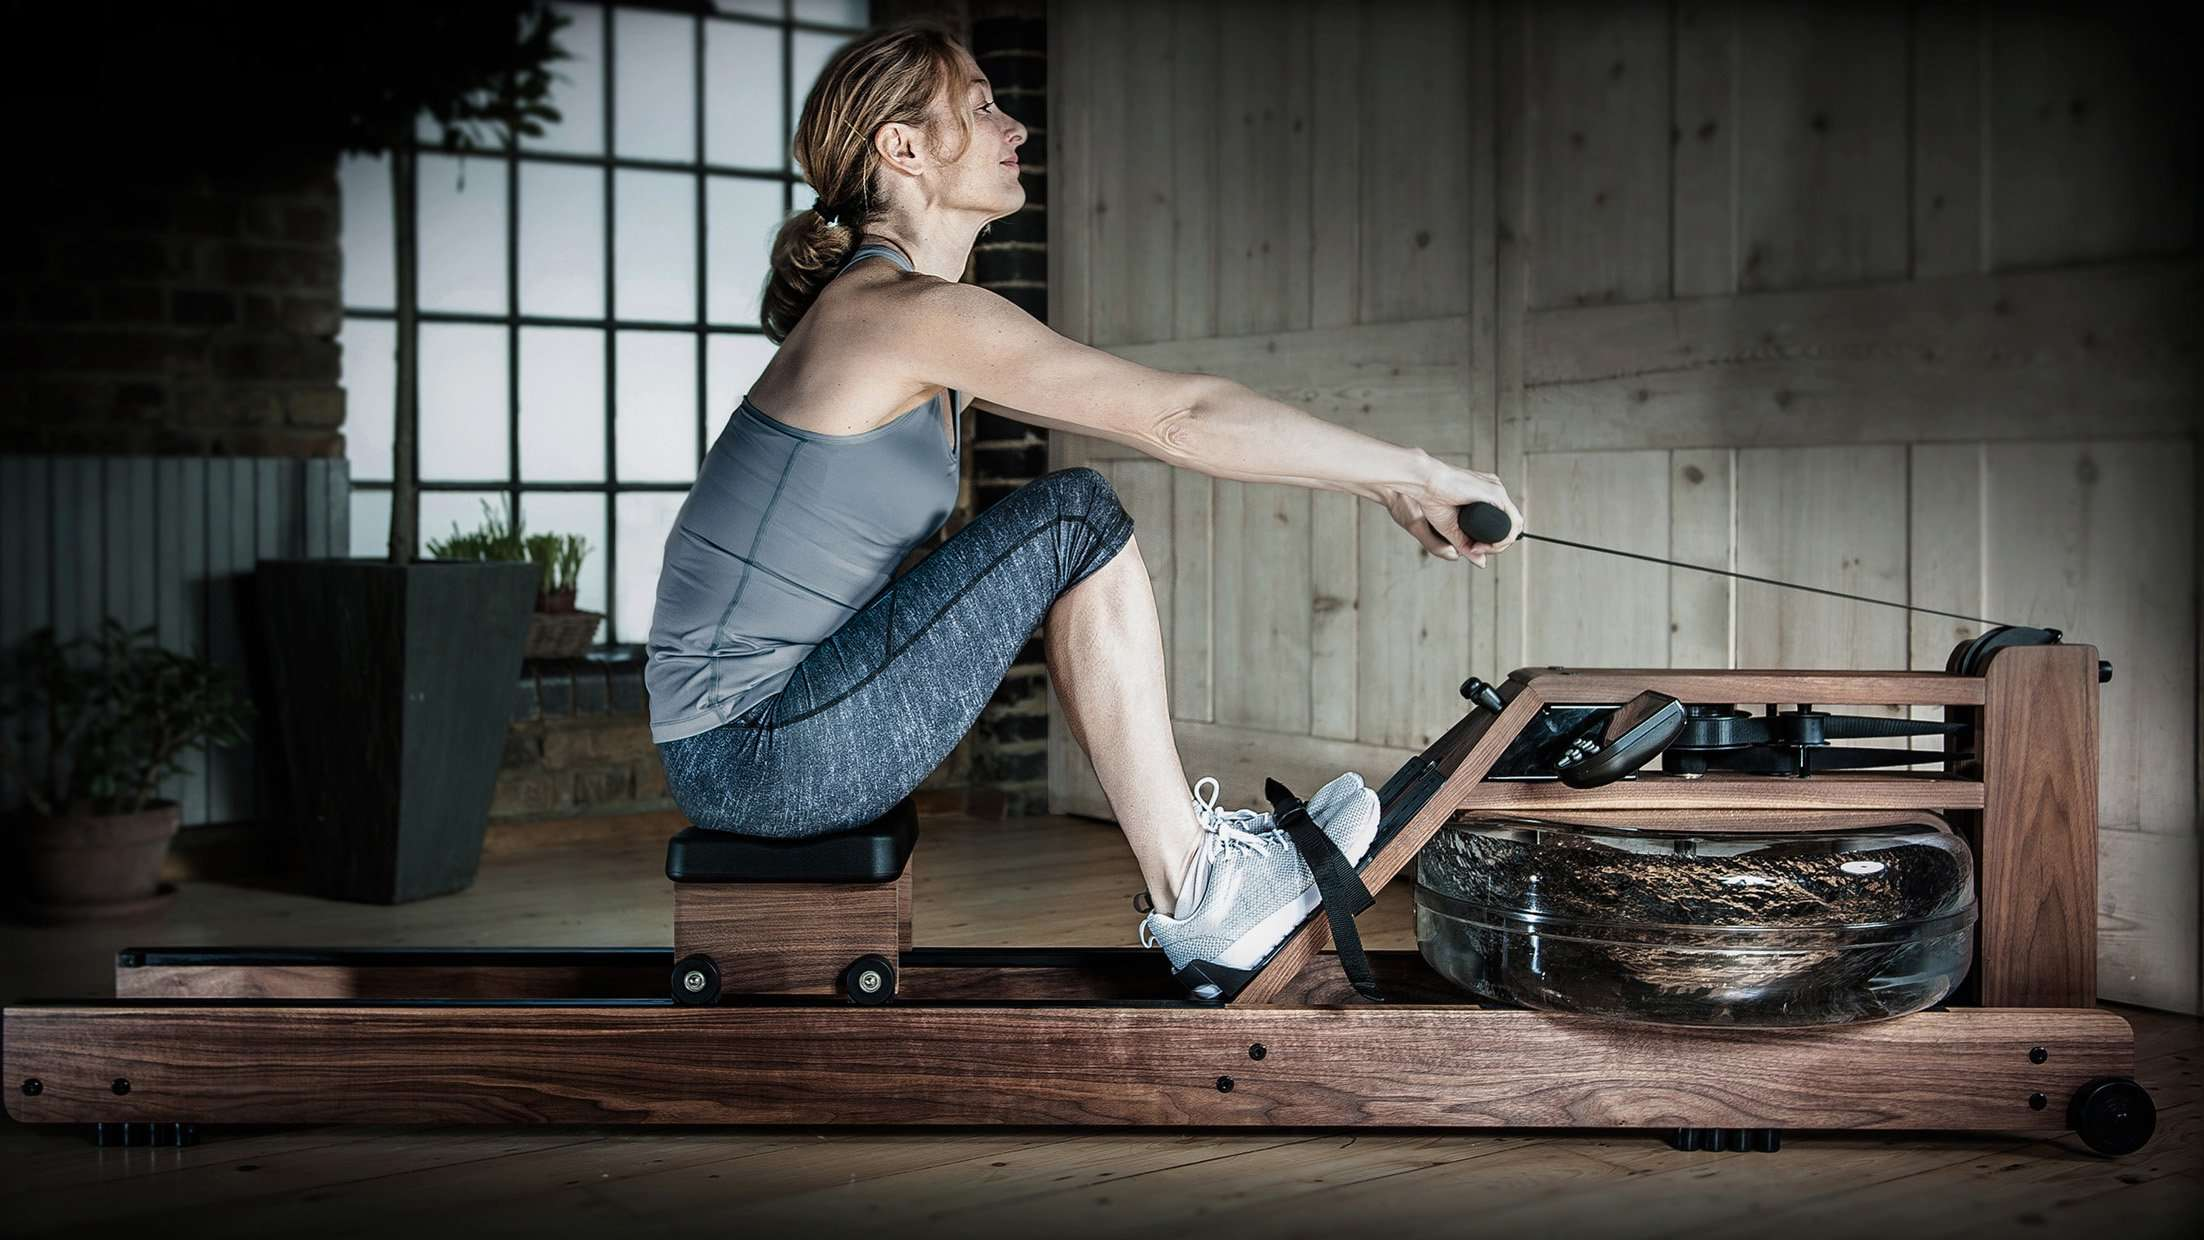 WaterRower Natural Rowing Machine review: #1 Water Rowing